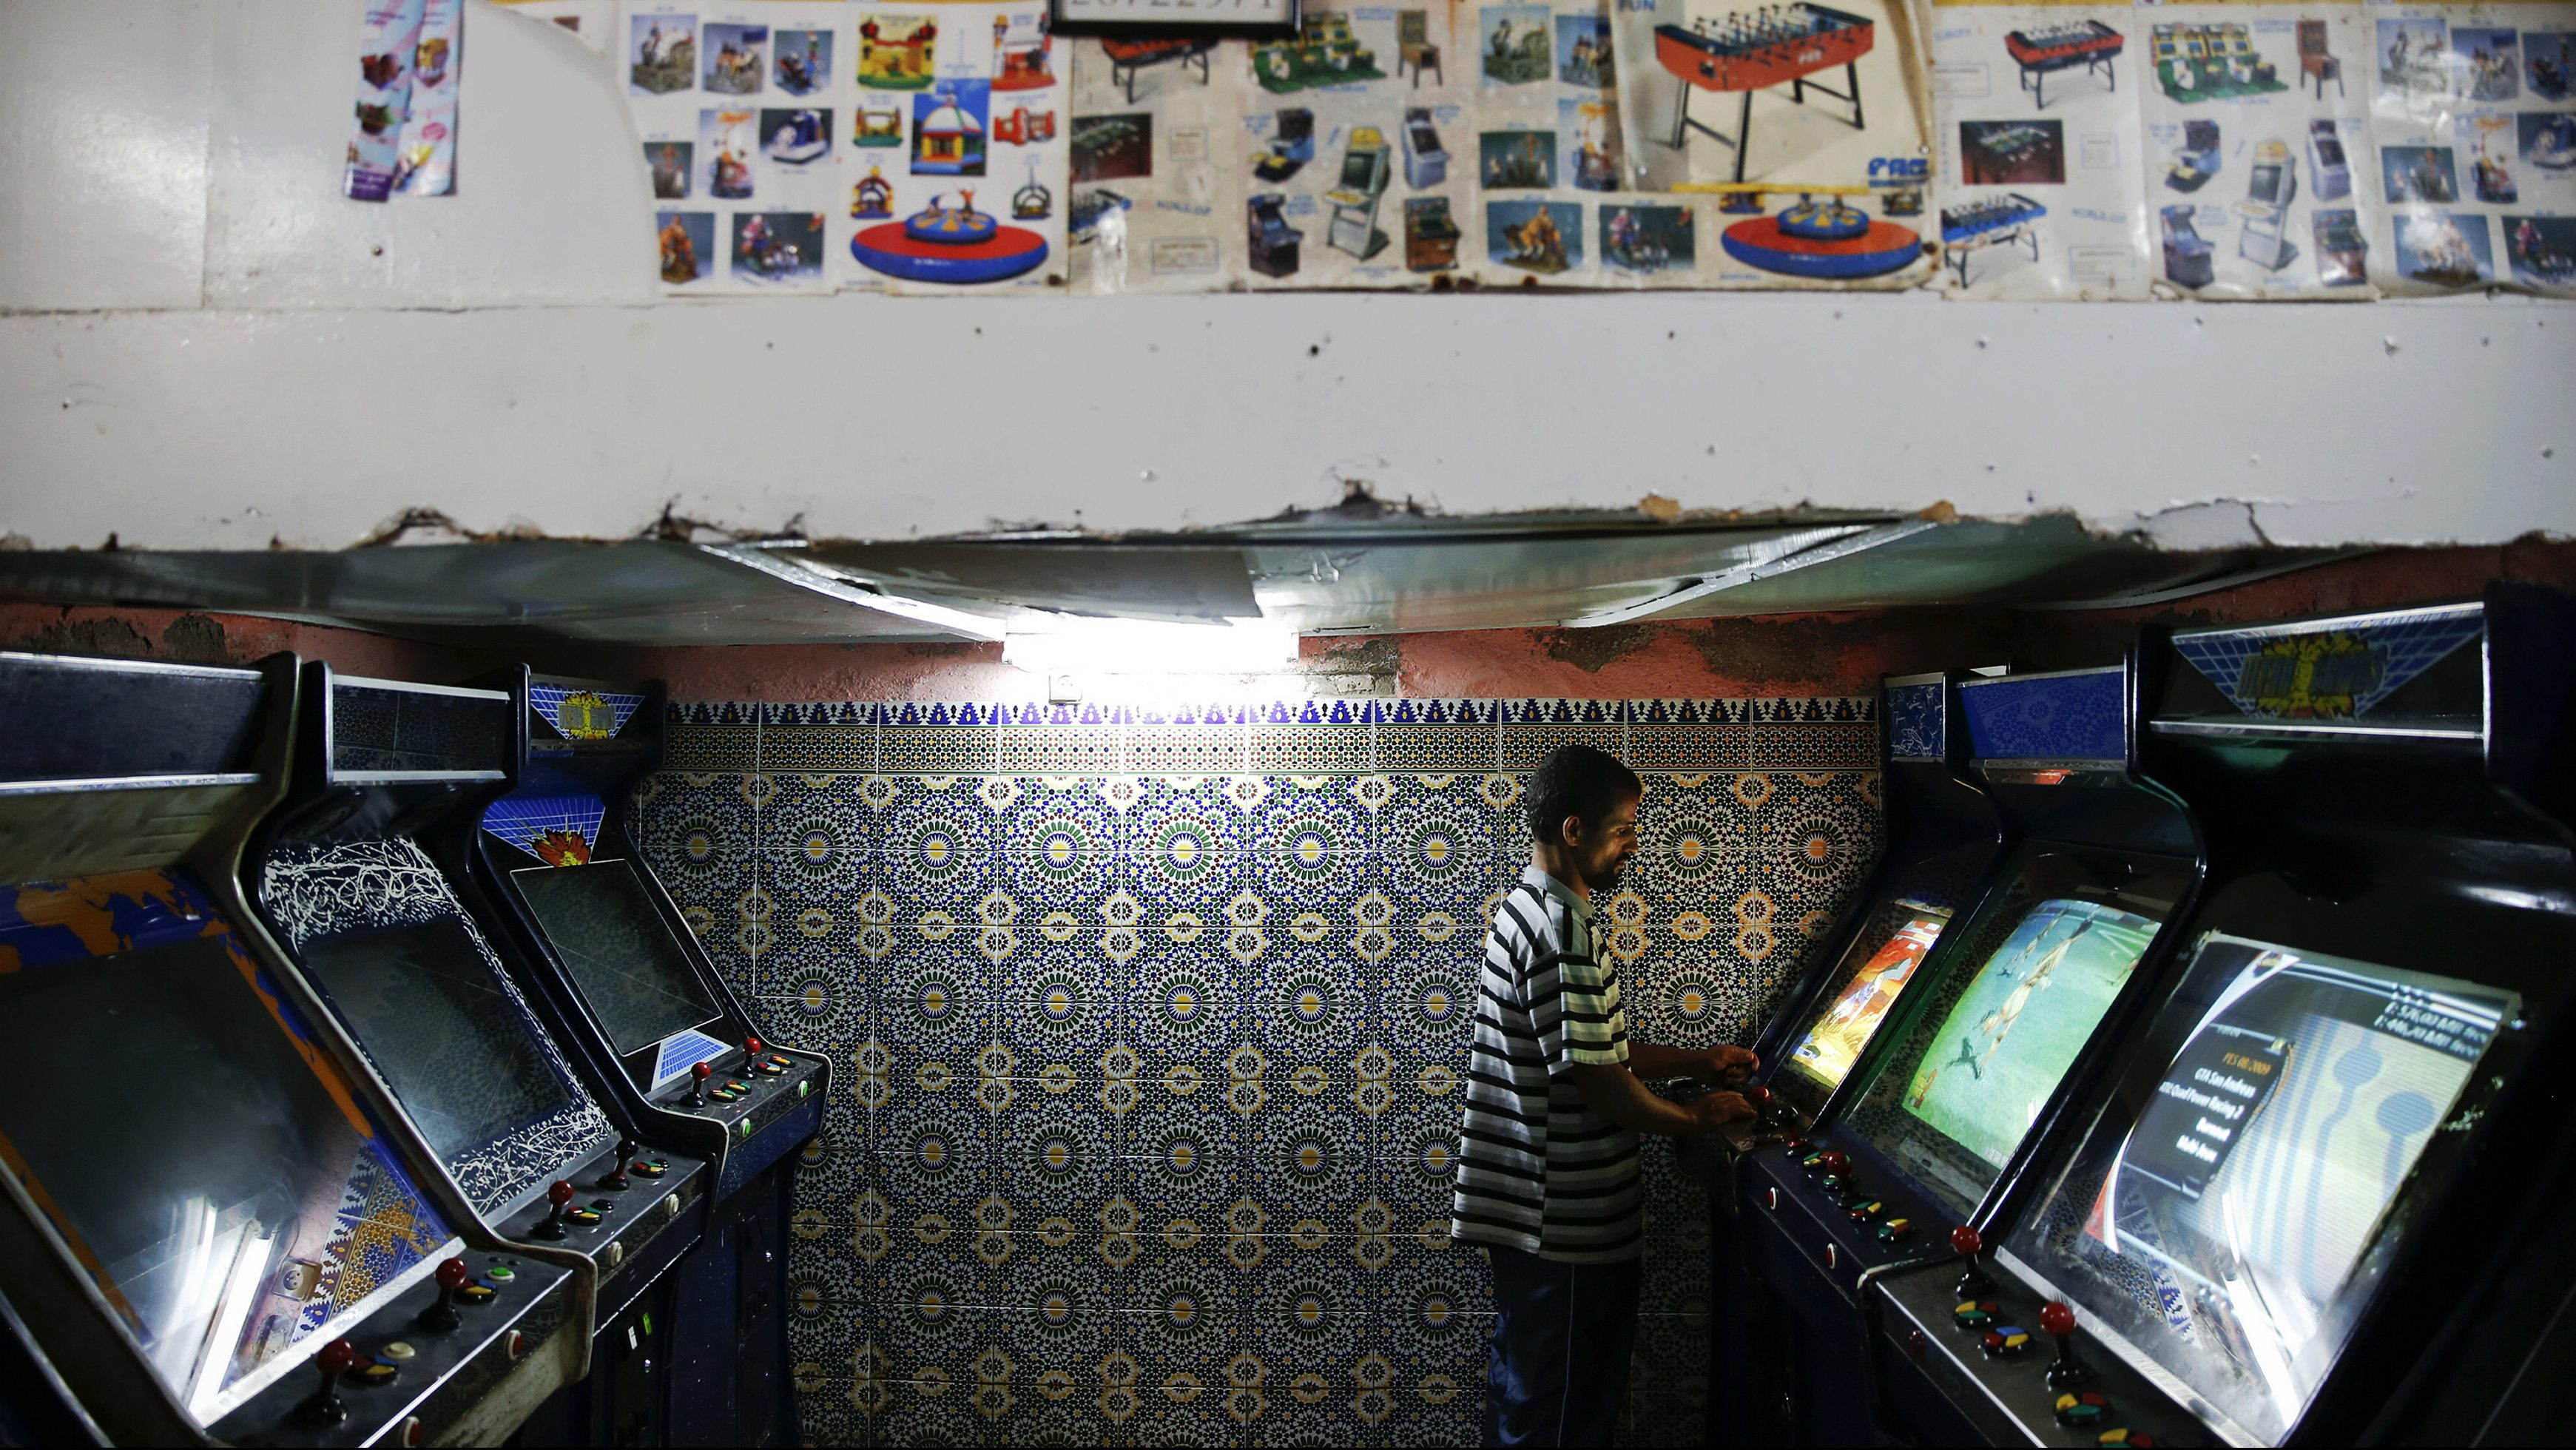 "A man plays video games in an entertainment saloon in Rabat's Medina September 21, 2014. UNESCO made Rabat a World Heritage Site two years ago and media and tour operators call it a ""must-see destination."" But it seems the tourist hordes have yet to find out. While visitors are getting squeezed through the better-known sites of Marrakesh and Fez, the old part of Rabat - with its beautiful Medina and Kasbah of the Udayas - remains an almost unspoiled oasis of calm. Smaller and more compact, its labyrinths of streets, passages and dead ends are a treasure trove of shapes and colours, of moments begging to be caught by the photographer's lens. Picture taken September 21, 2014."